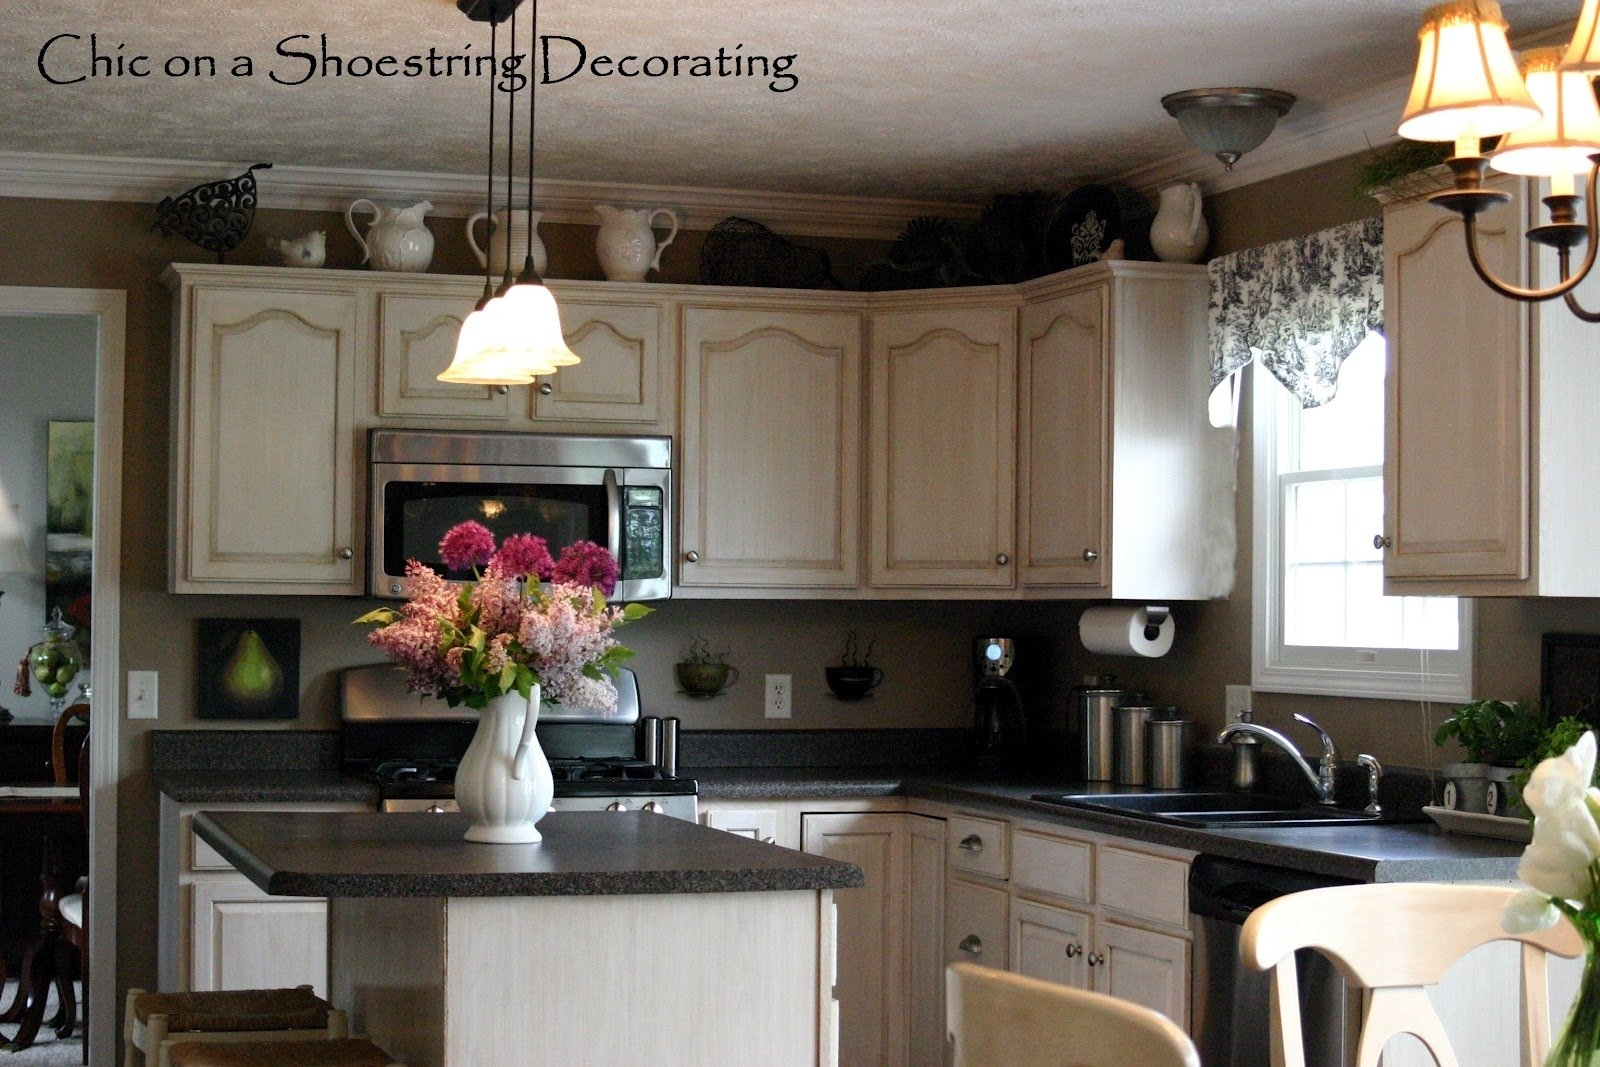 10 Lovely Decorating Ideas For Above Kitchen Cabinets decor for tops of kitchen cabinets best home decoration world class 2021